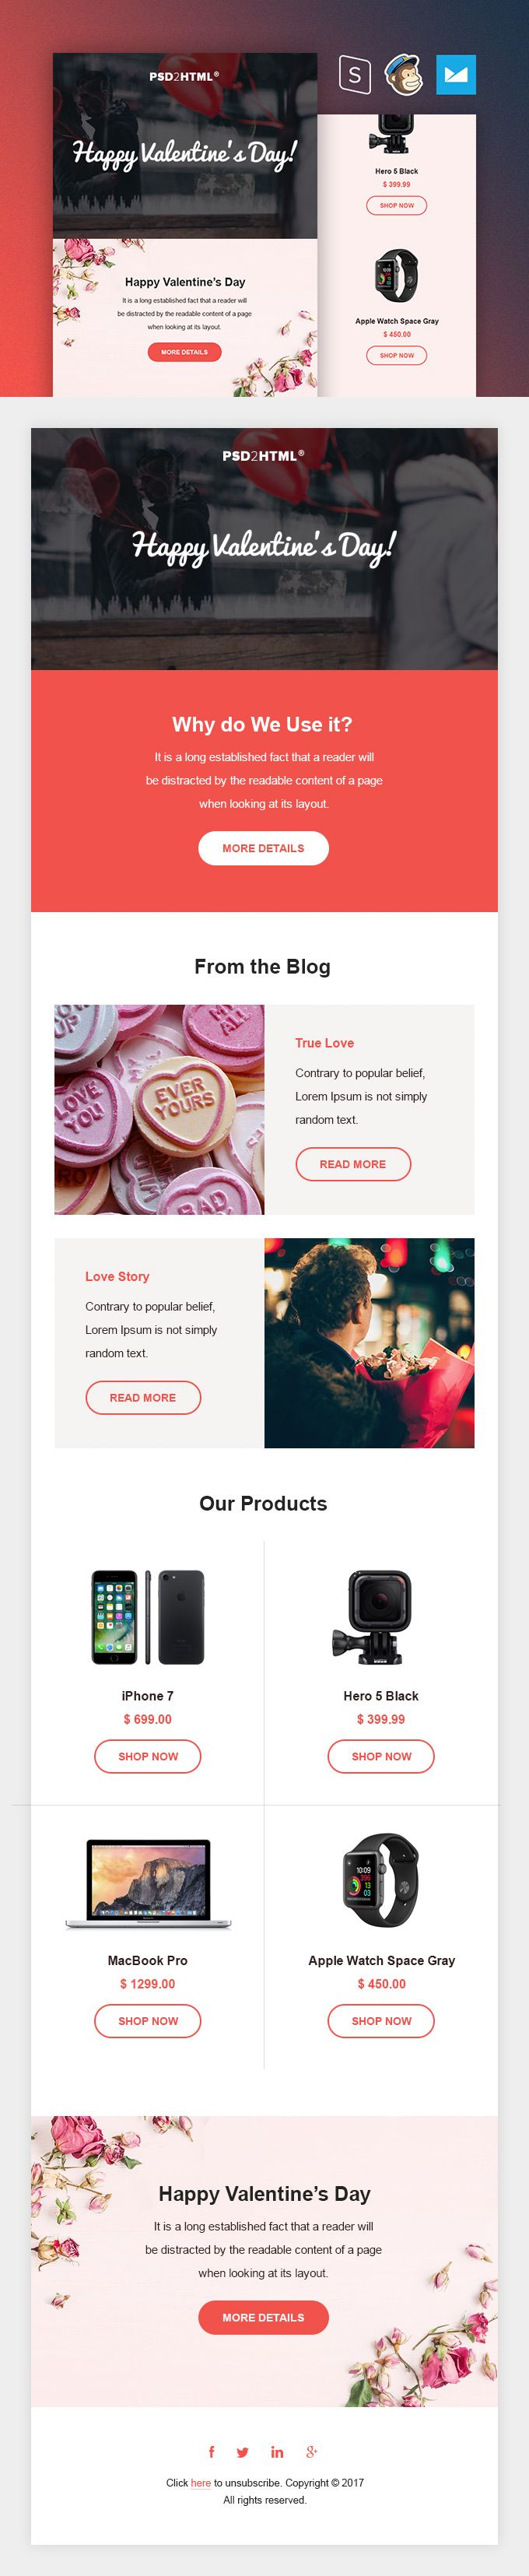 25+ best ideas about Free email templates on Pinterest | Free ...